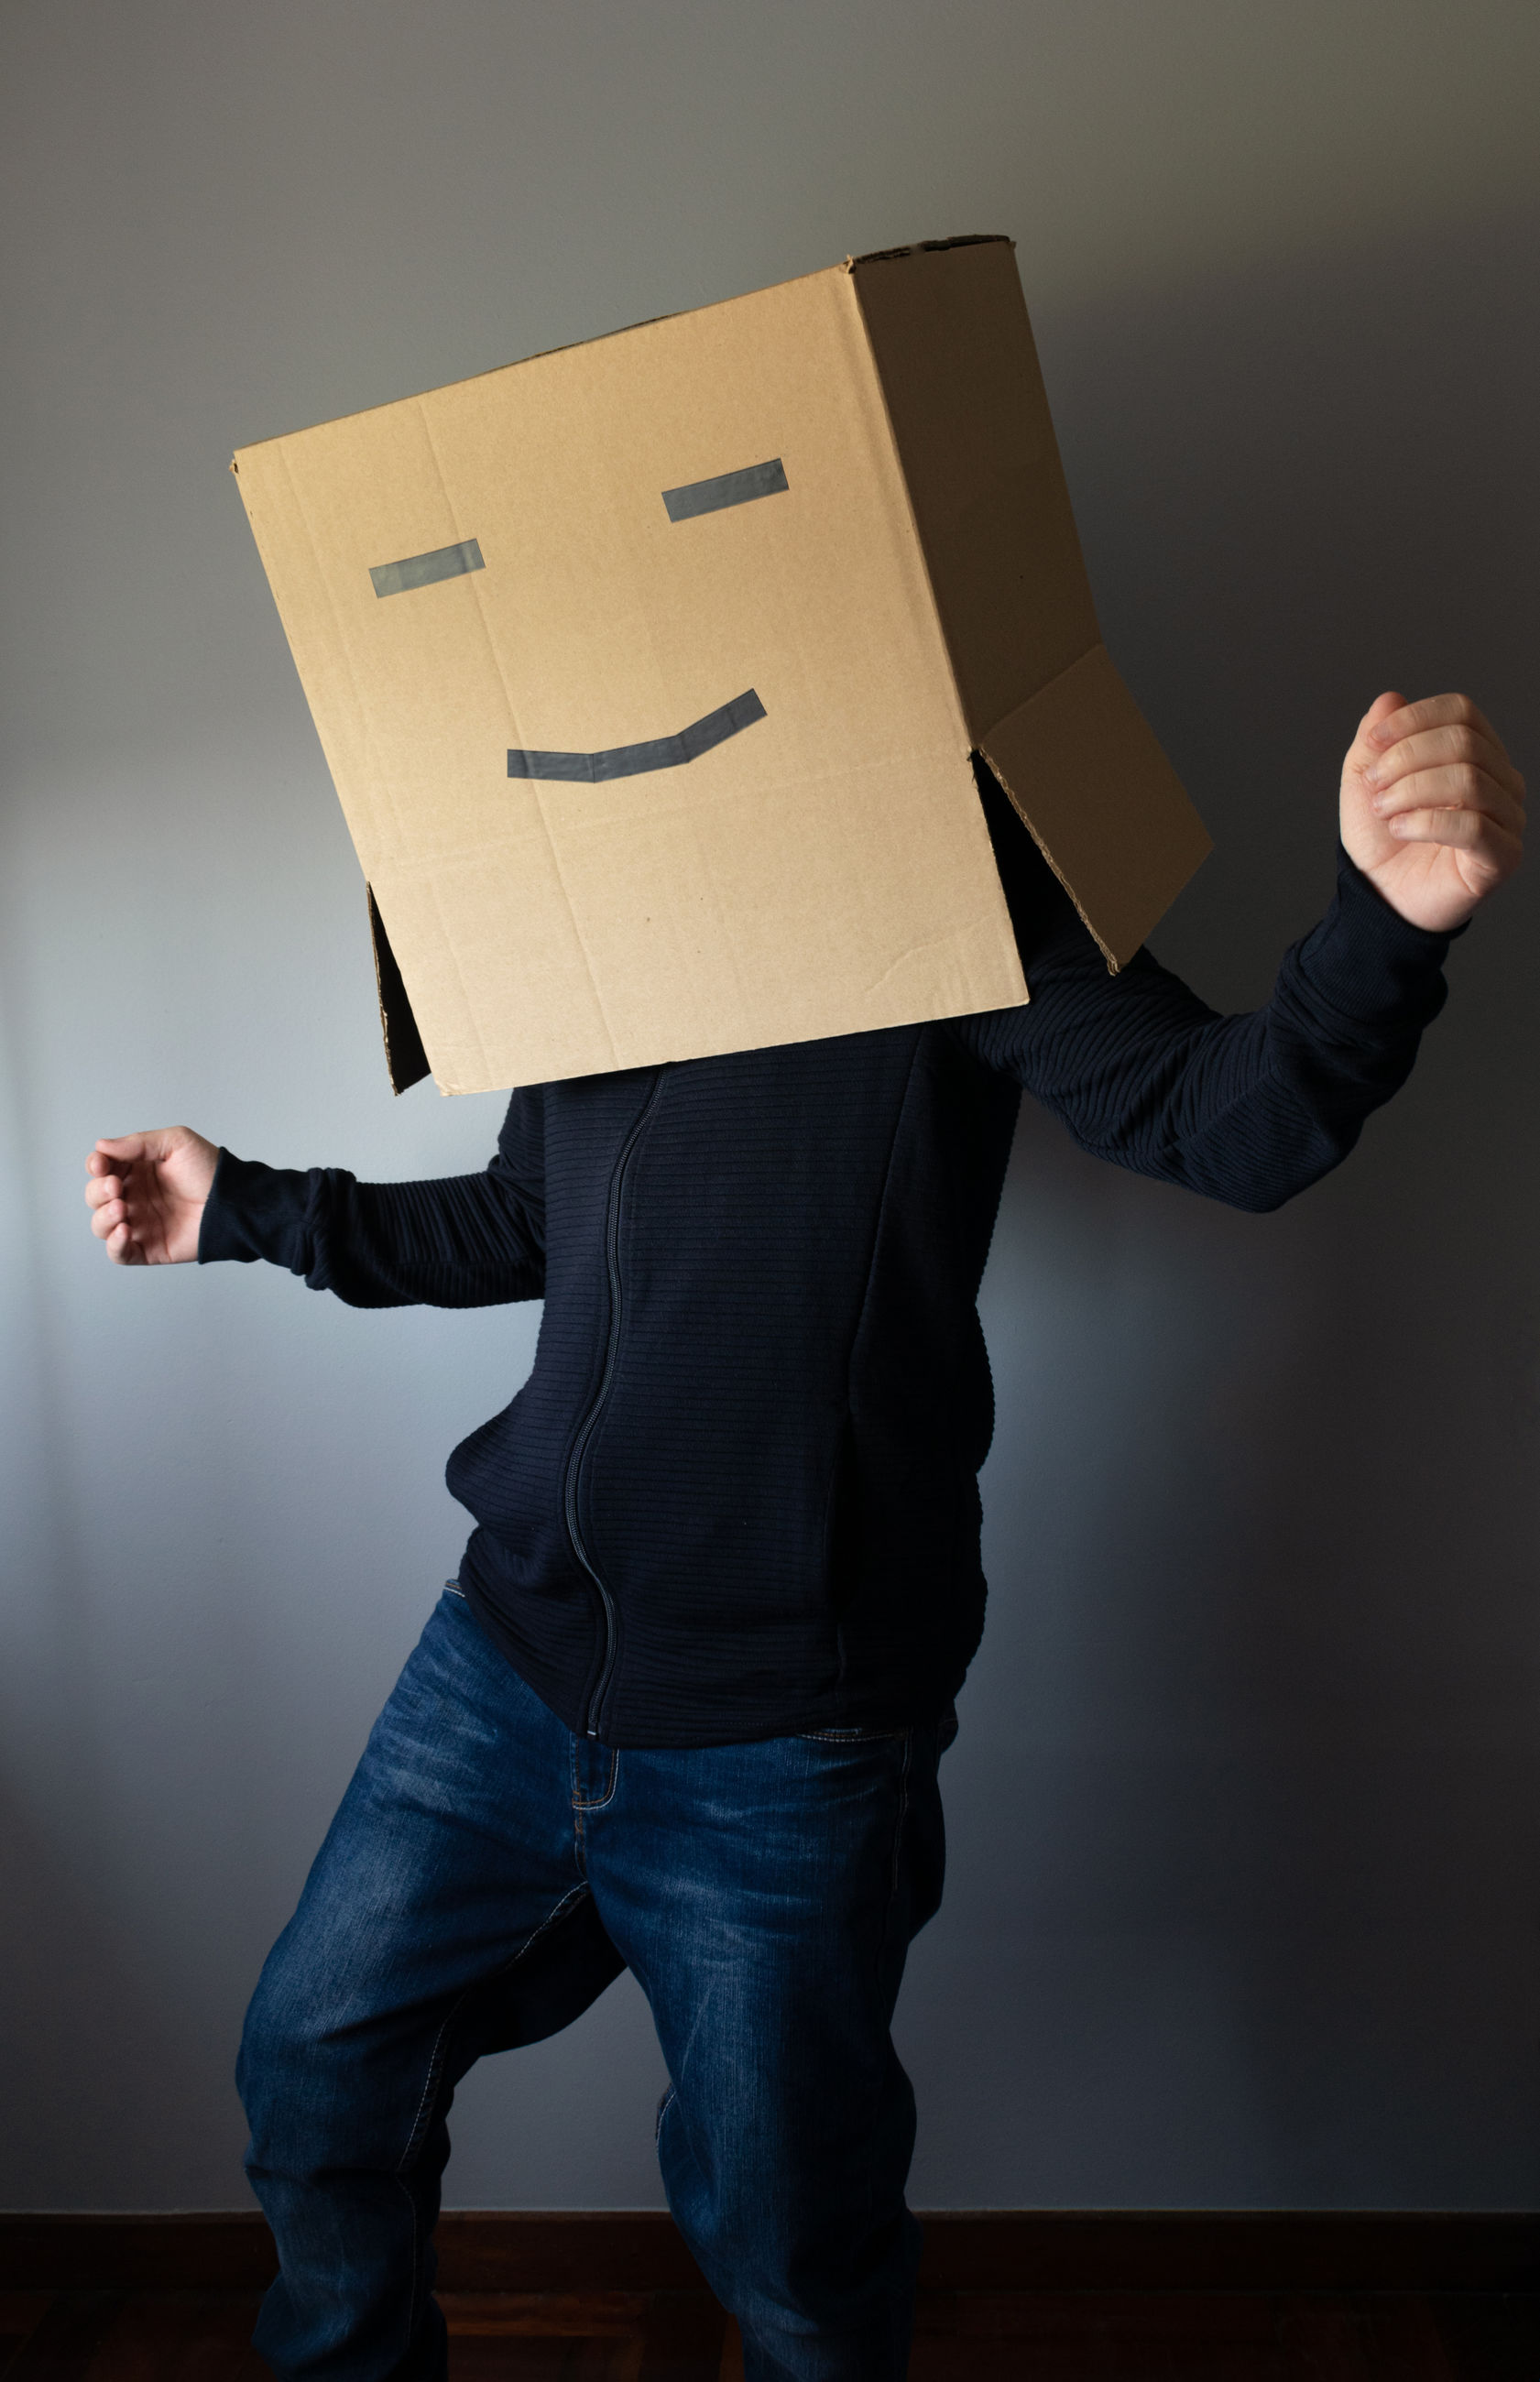 LOW SECTION OF PERSON STANDING ON PAPER WITH ARMS